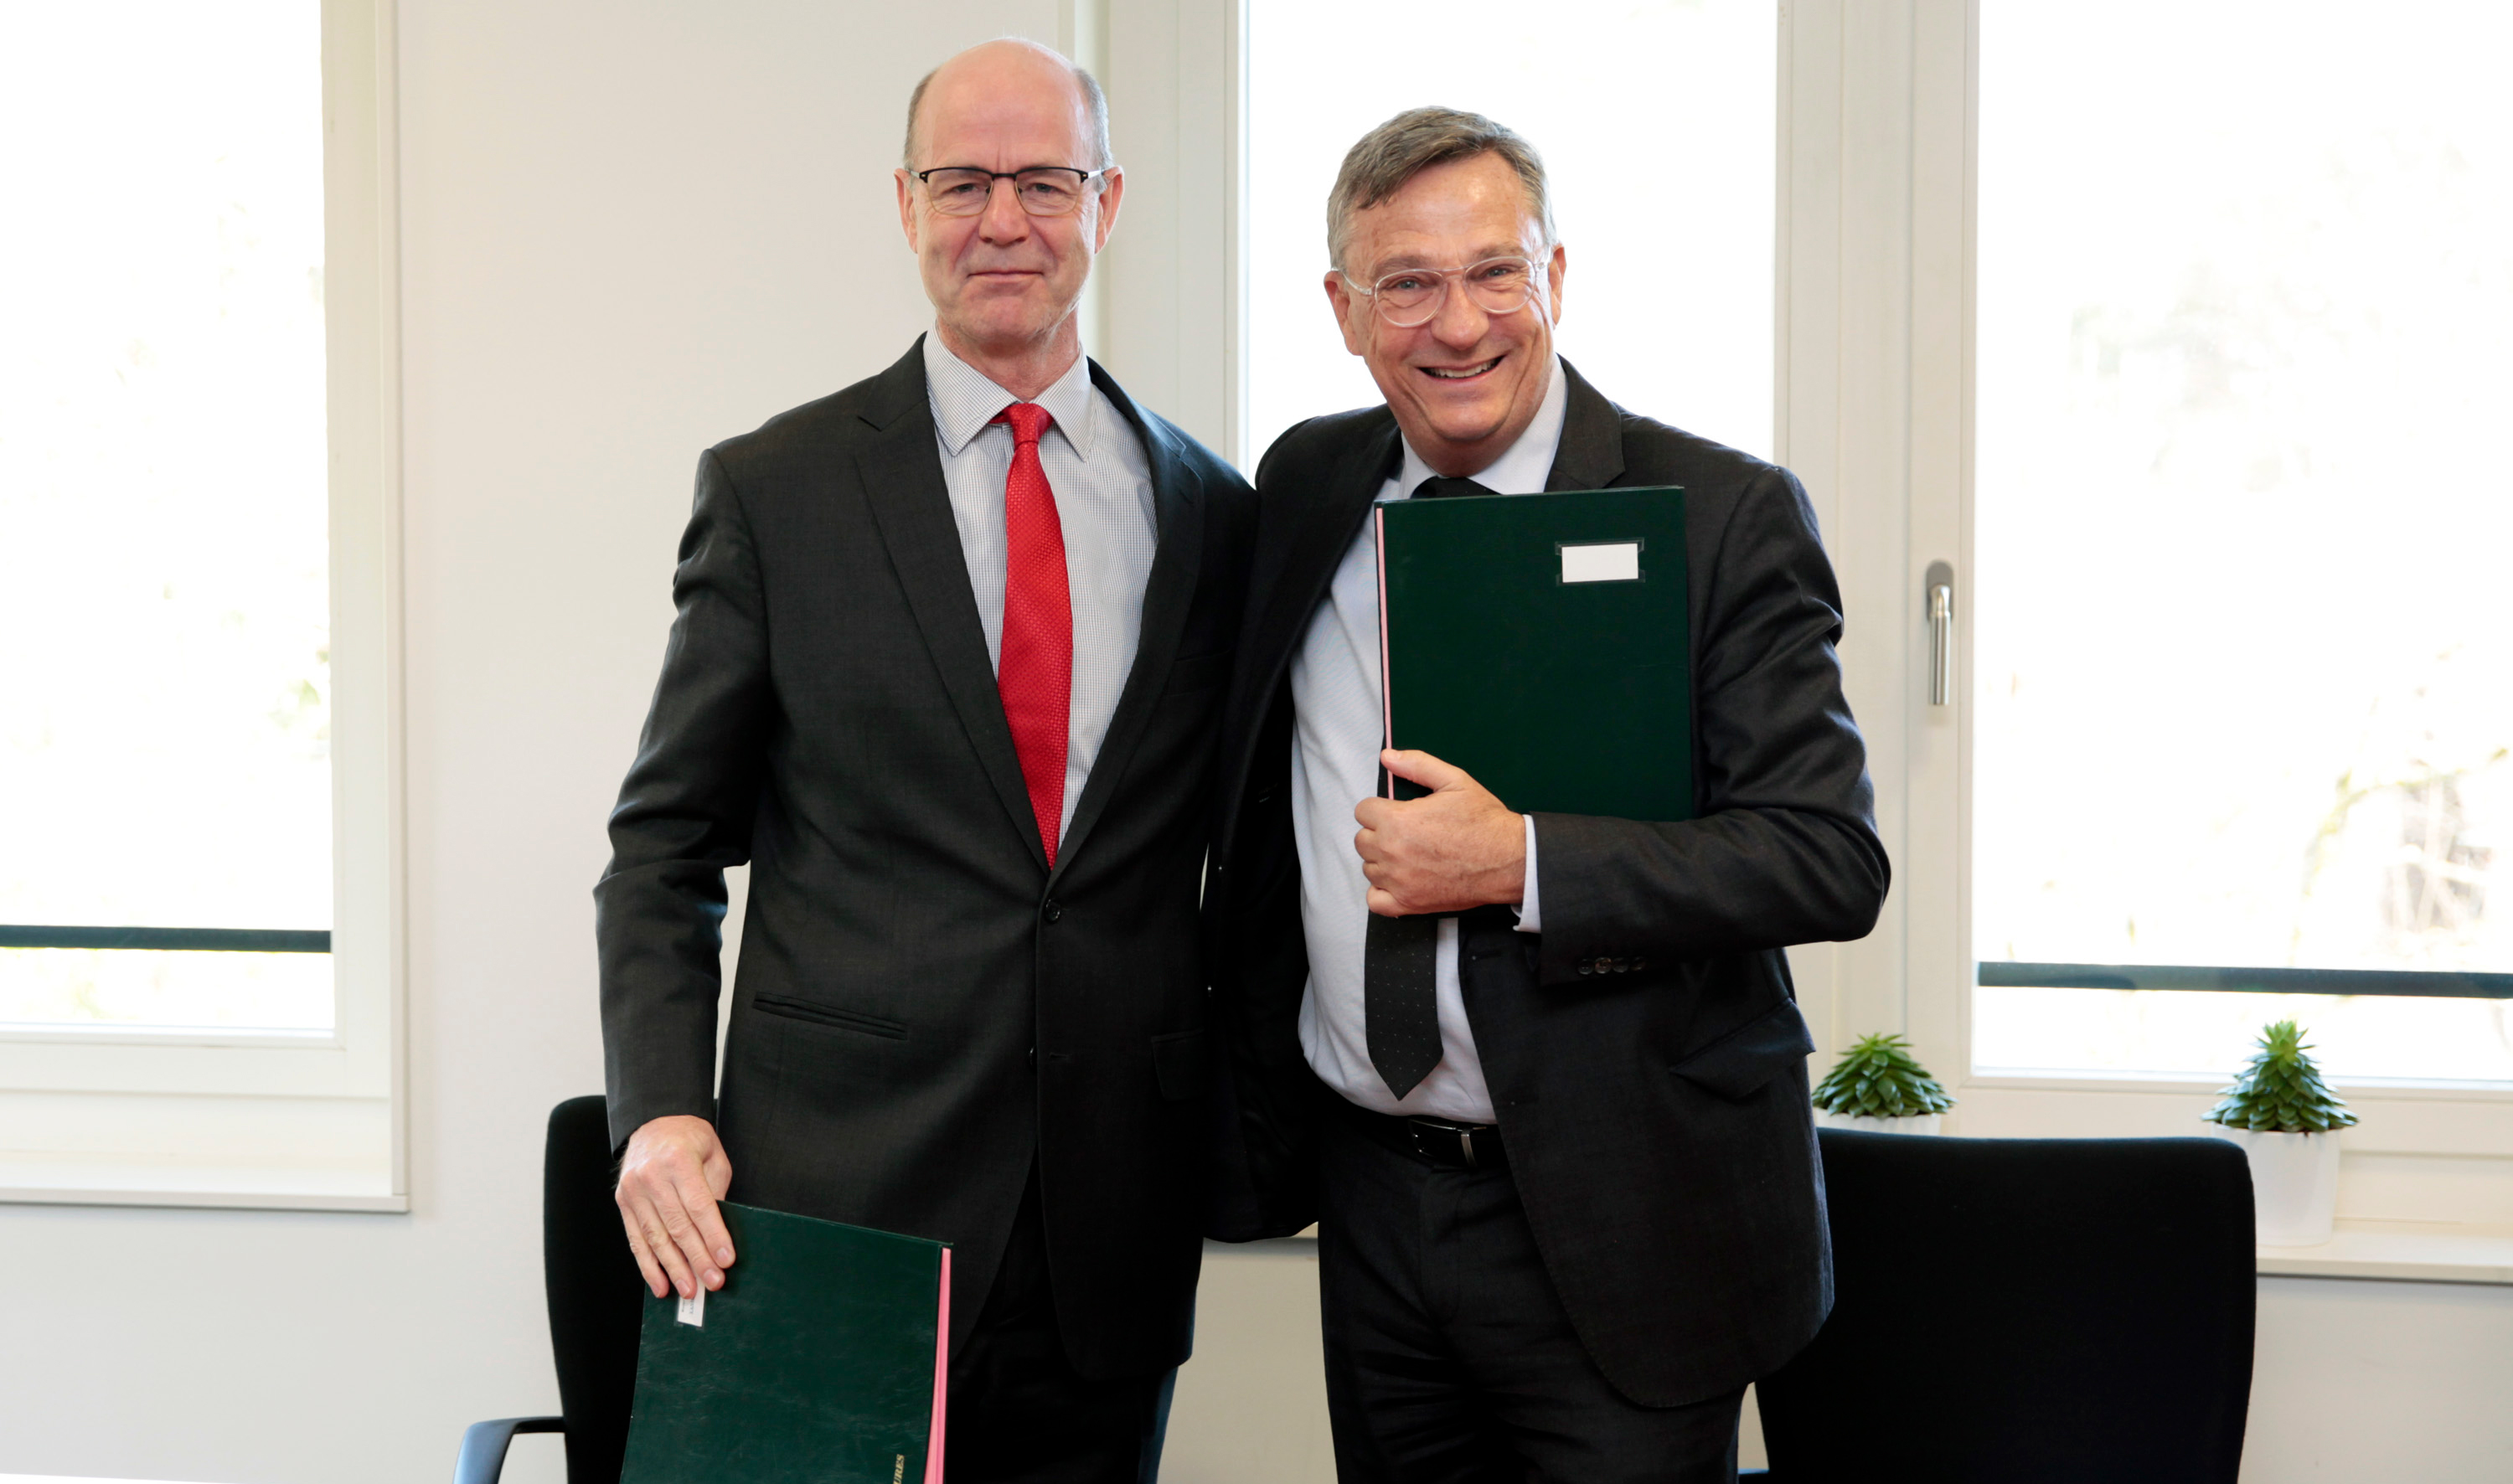 Tim Martineau, UNAIDS Deputy Executive Director, Management and Governance, a.i.,and Olivier Adam, UNV Executive Coordinator, signed a memorandum of understanding to foster collaboration between the two organizations.